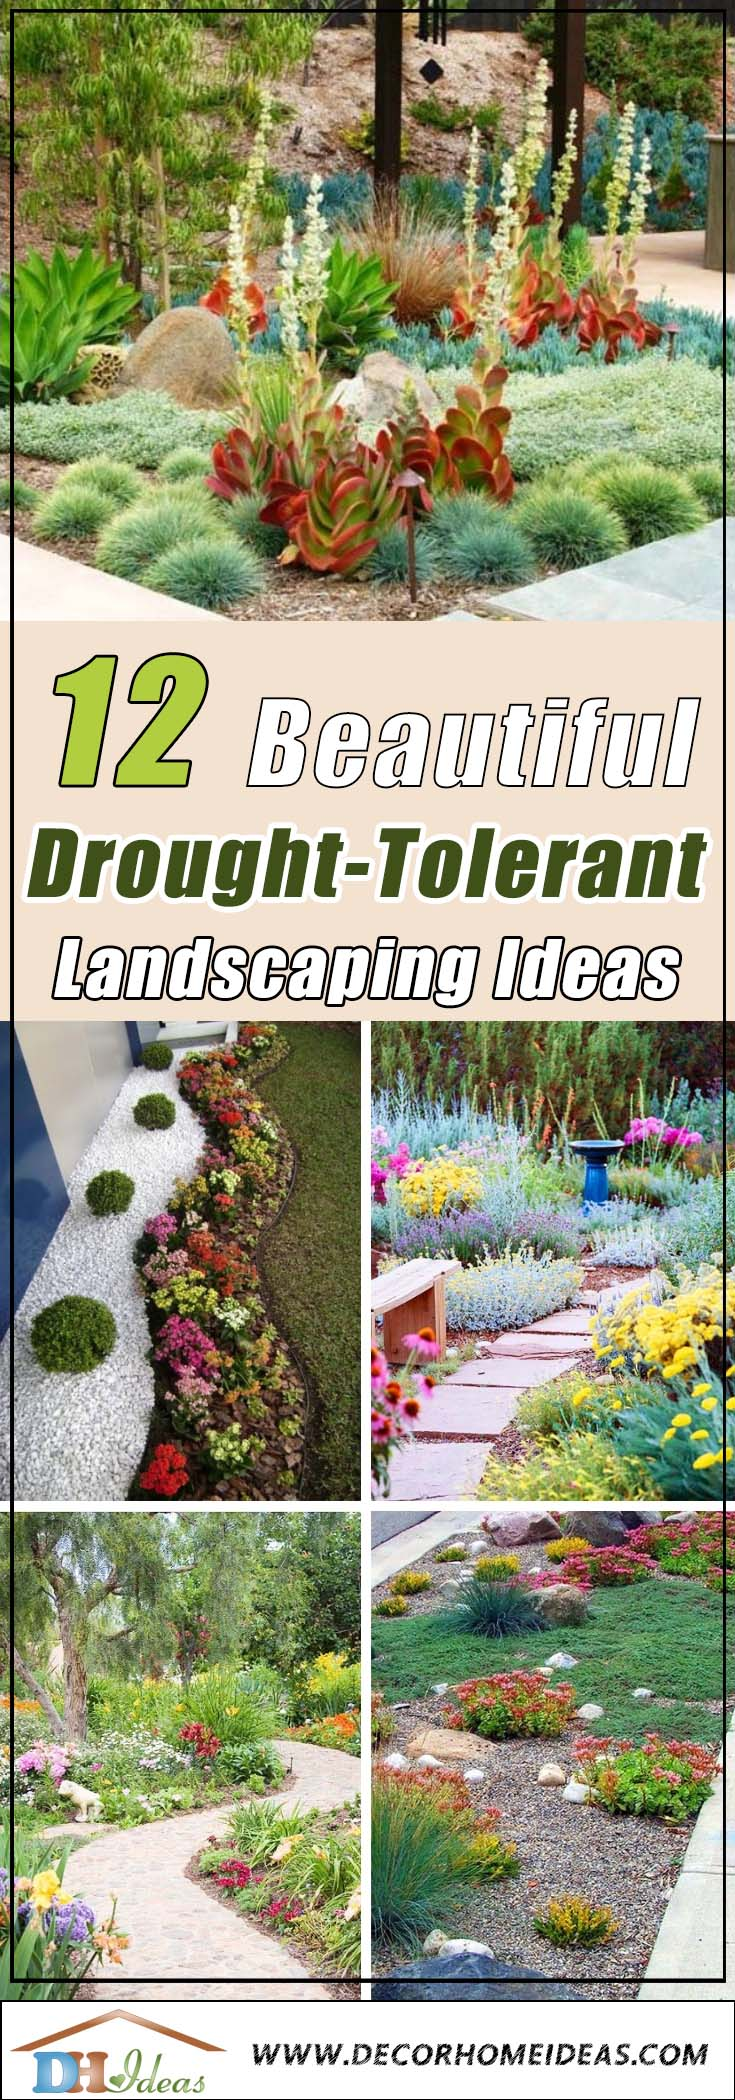 12 Best Drought Tolerant Landscaping Ideas #droughttolerant #landscaping #garden #decorhomeideas